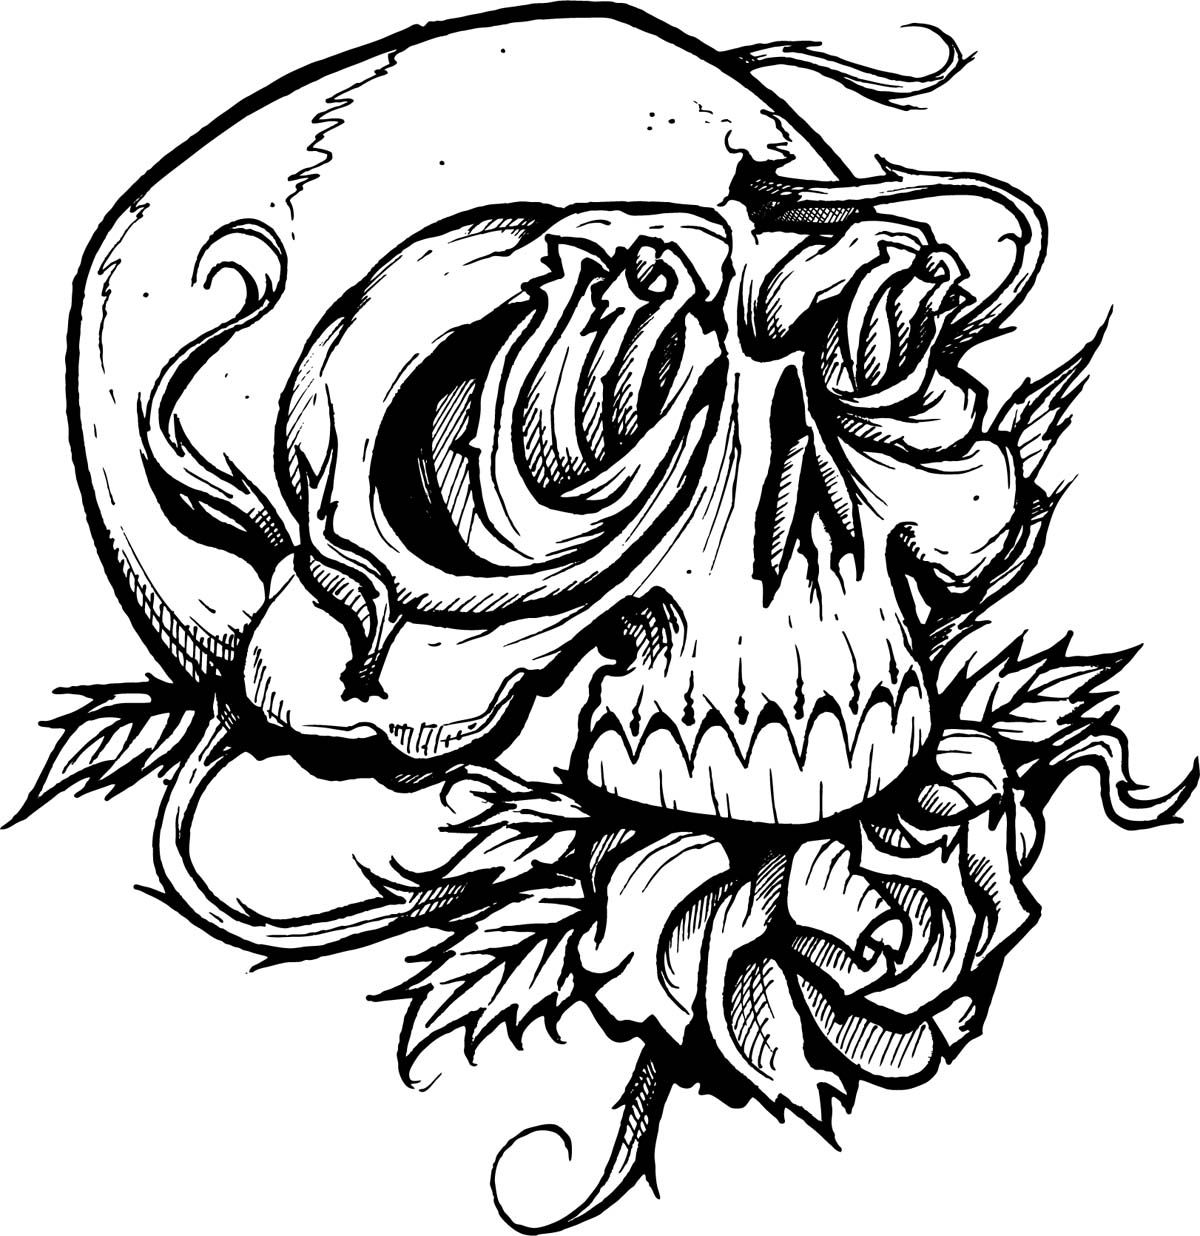 Tattoo Coloring Pages Tattoo Coloring Pages Best Coloring Pages Free Printable Tattoo Col Skull Coloring Pages Halloween Coloring Pages Detailed Coloring Pages